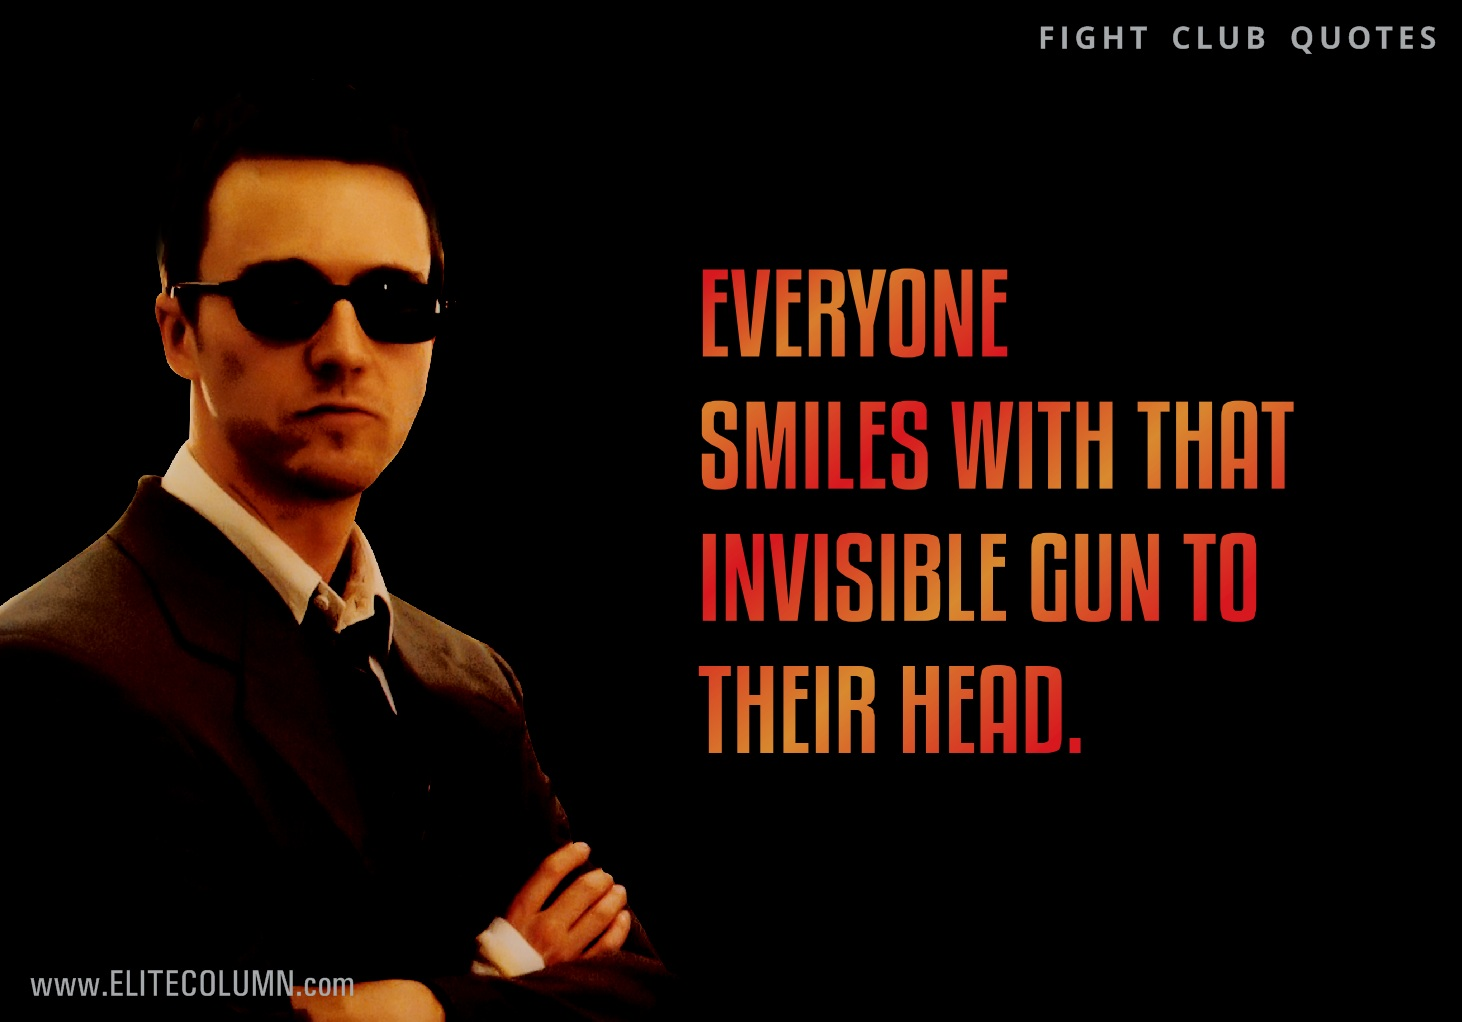 Fight Club Quotes (10)